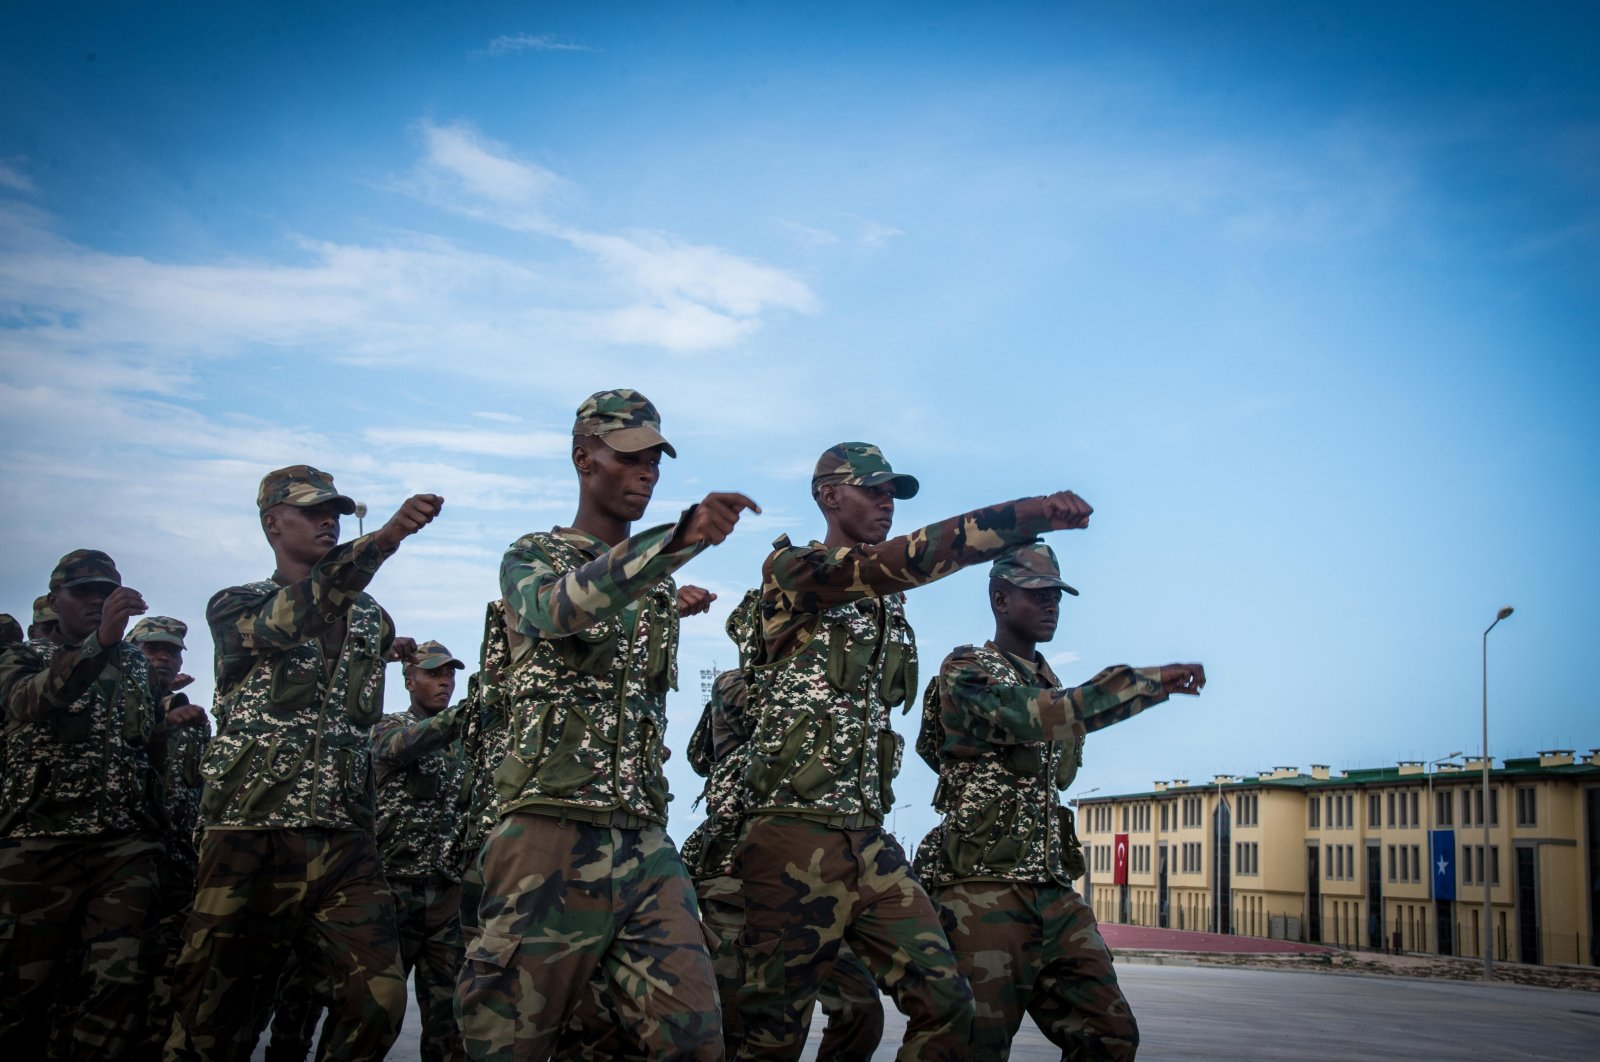 This undated file photo shows Somali troops marching at a military camp. (Fotoarsiv Photo)